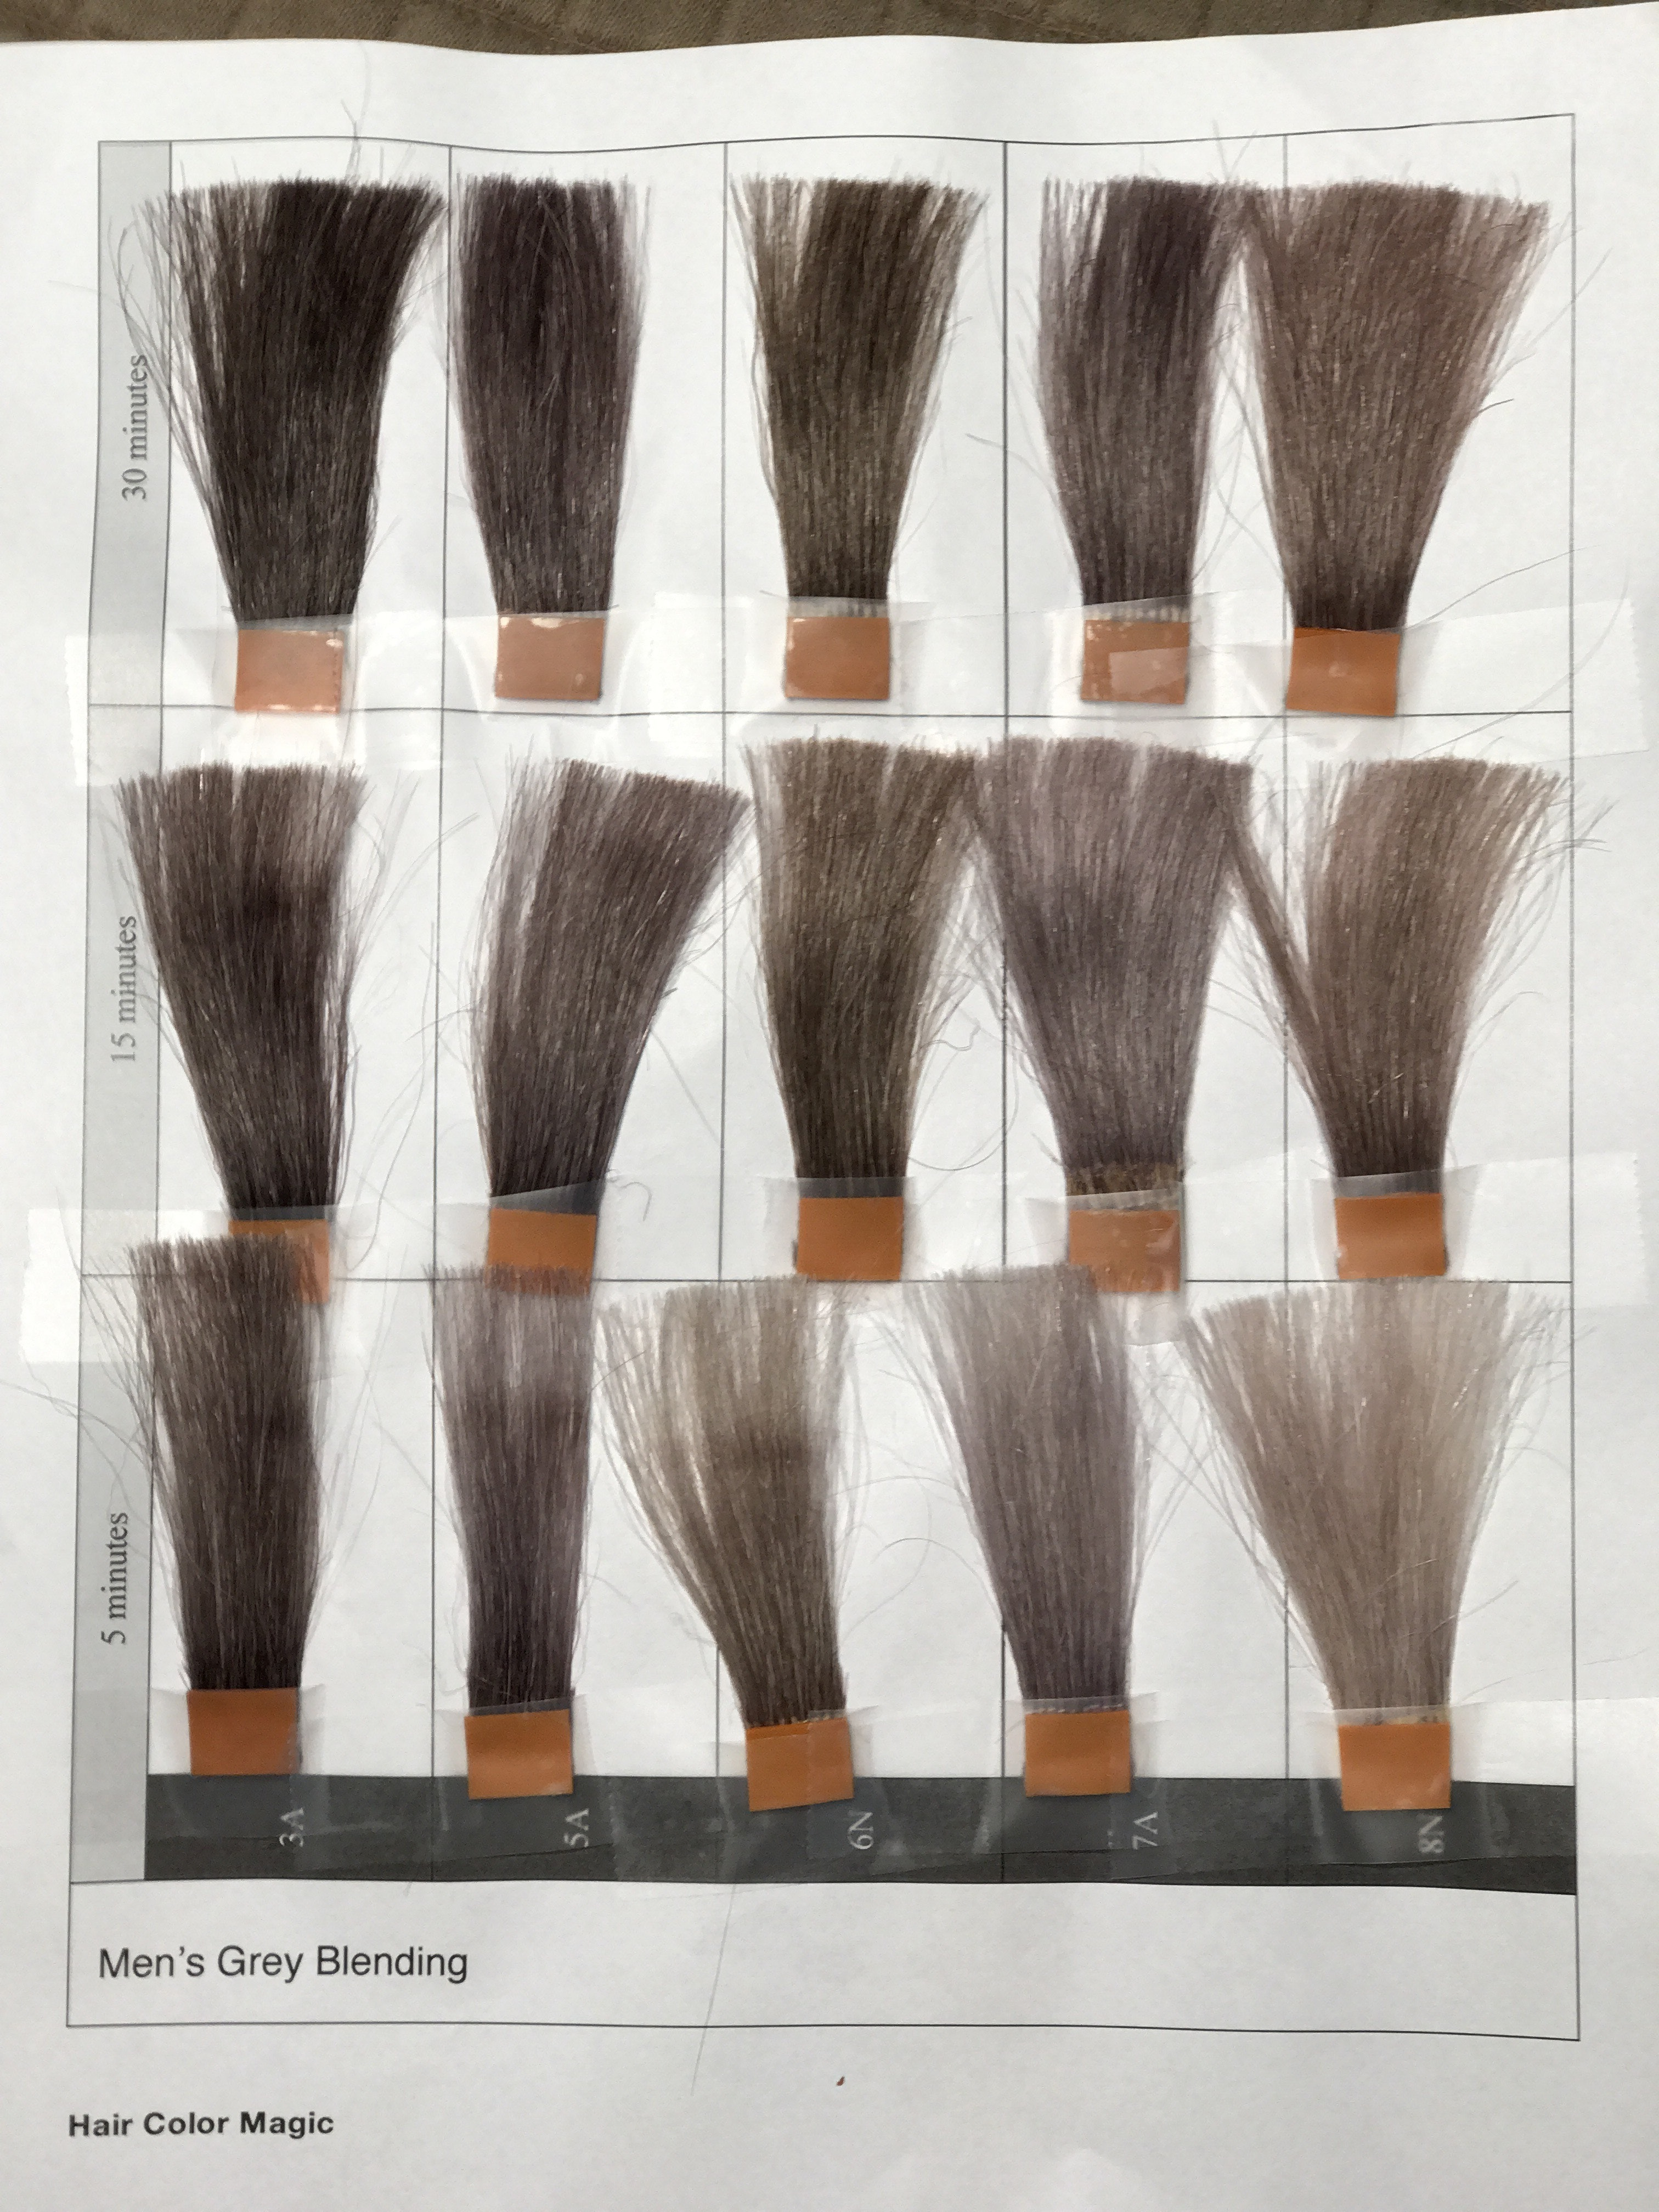 Mens Grey Blending Timing 5 Minutes15 Minutes30 Minutesfrom The